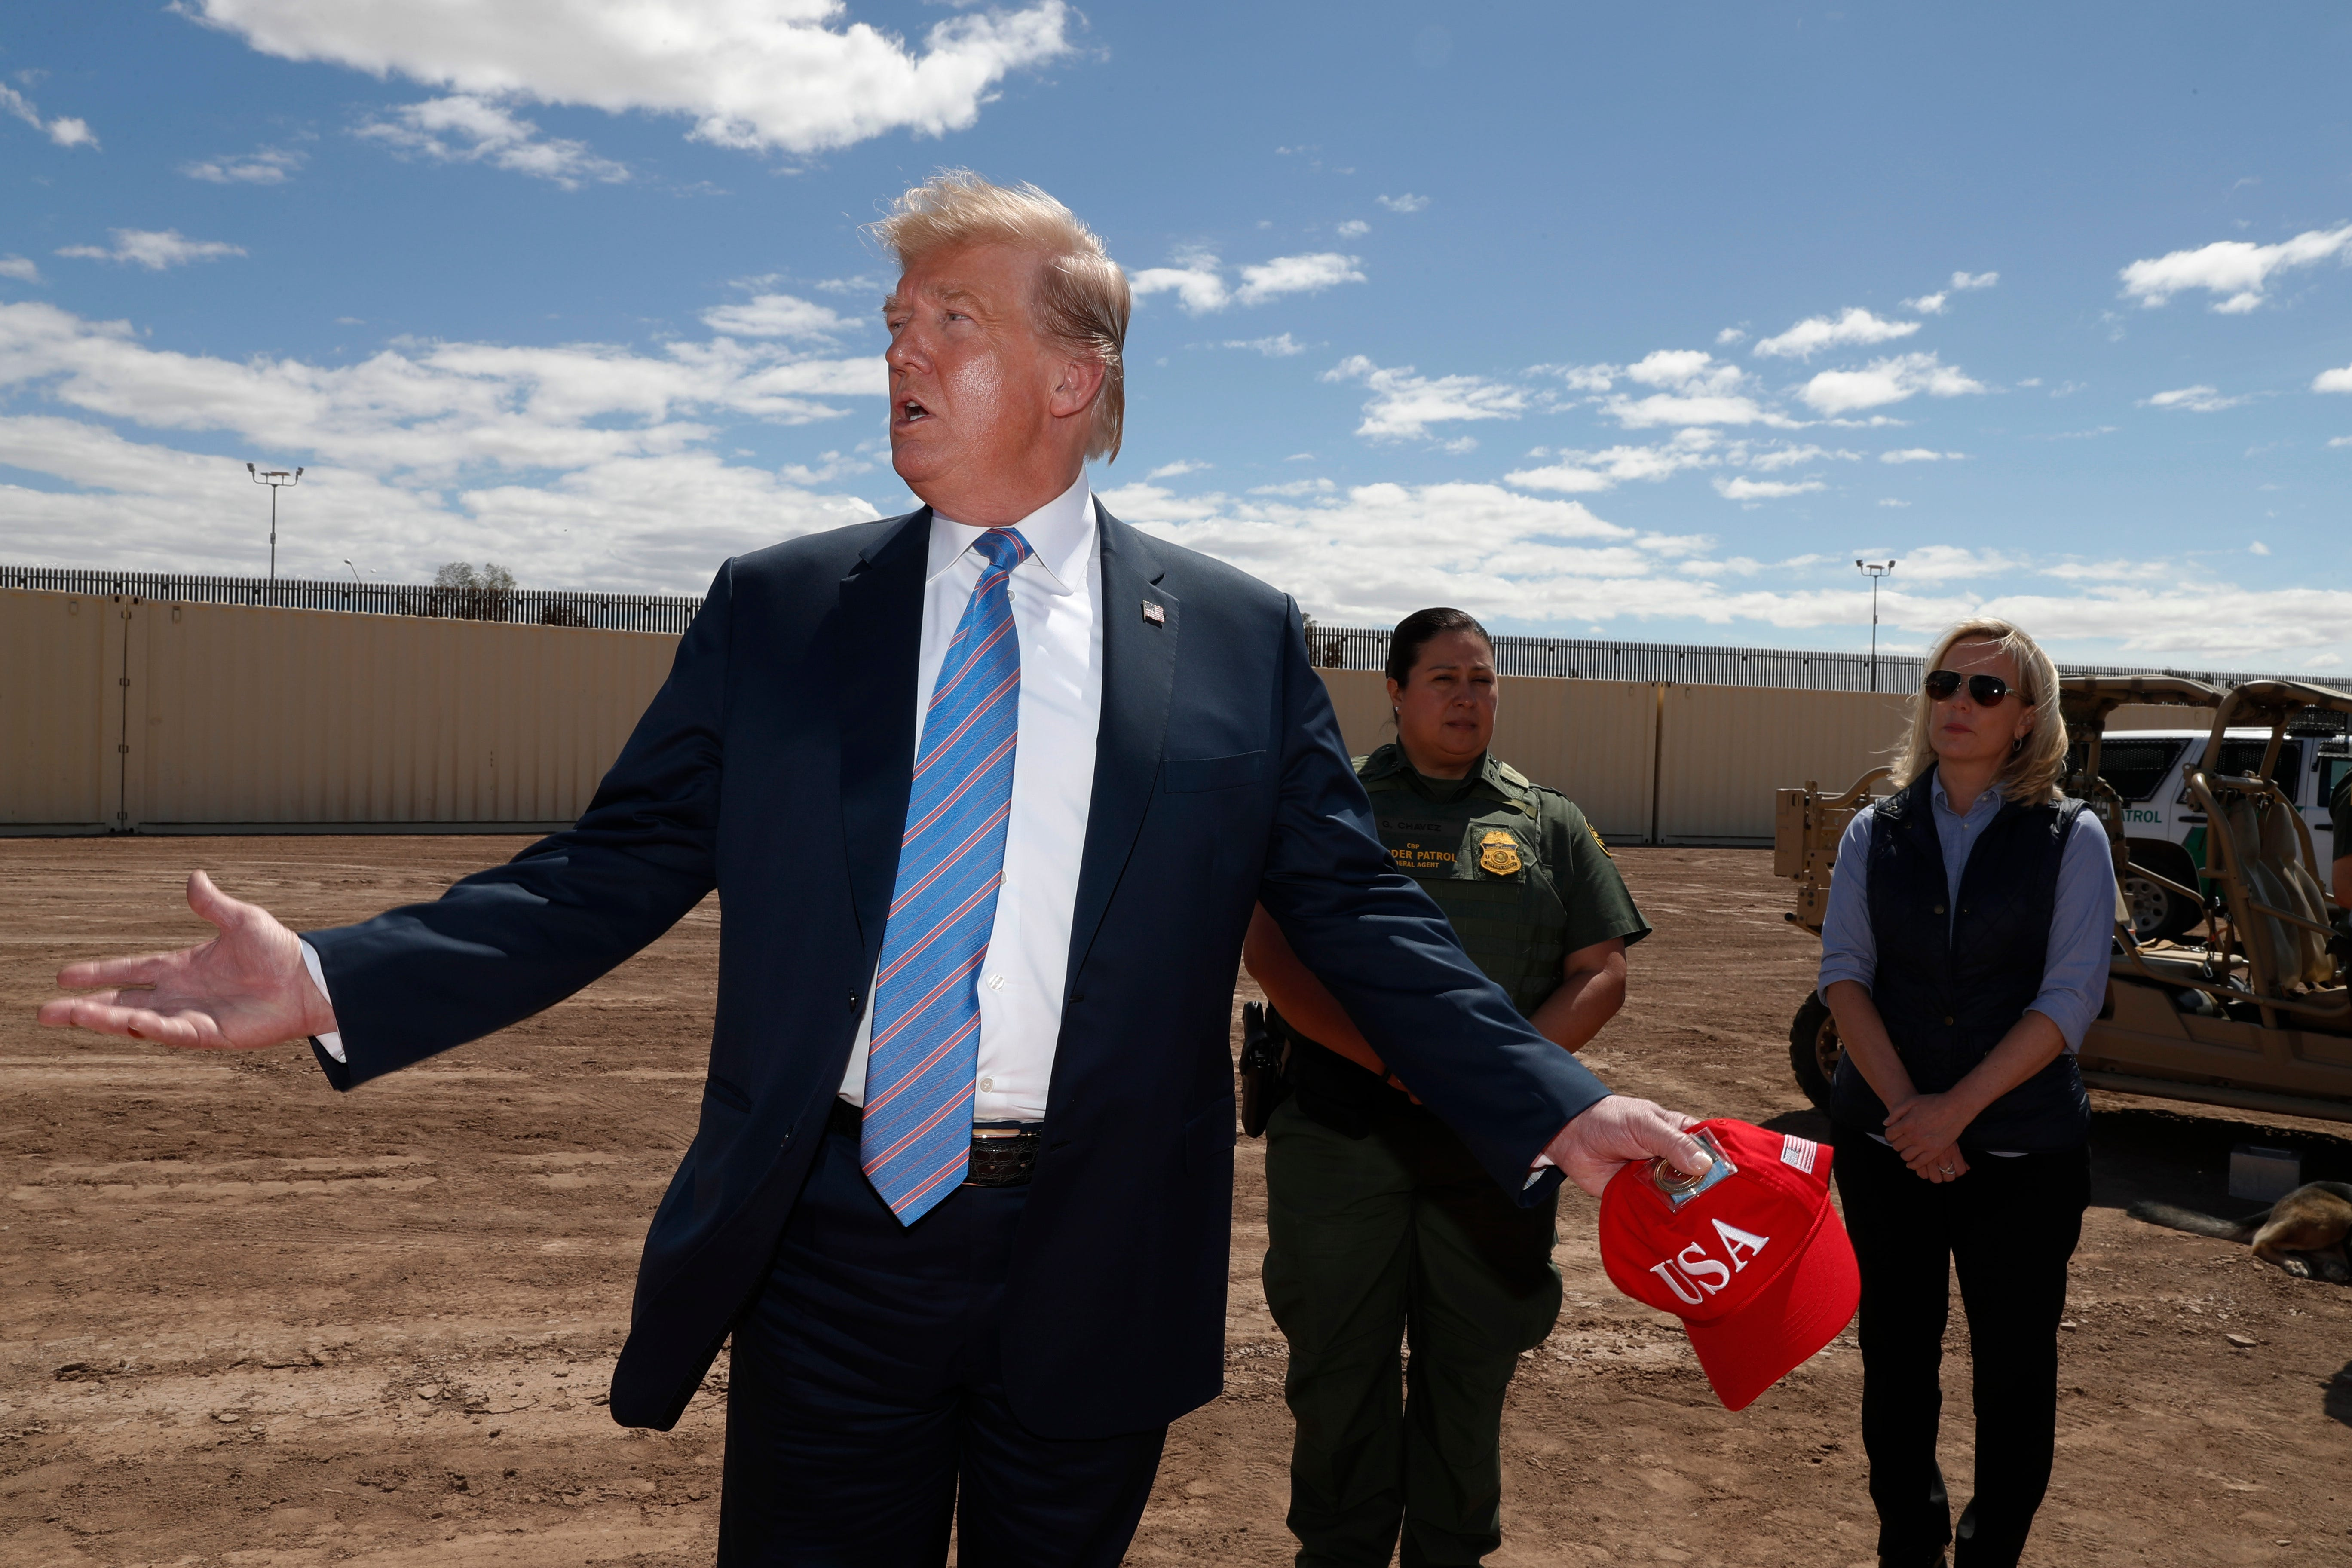 Opinion: Yes, there is a crisis at the border